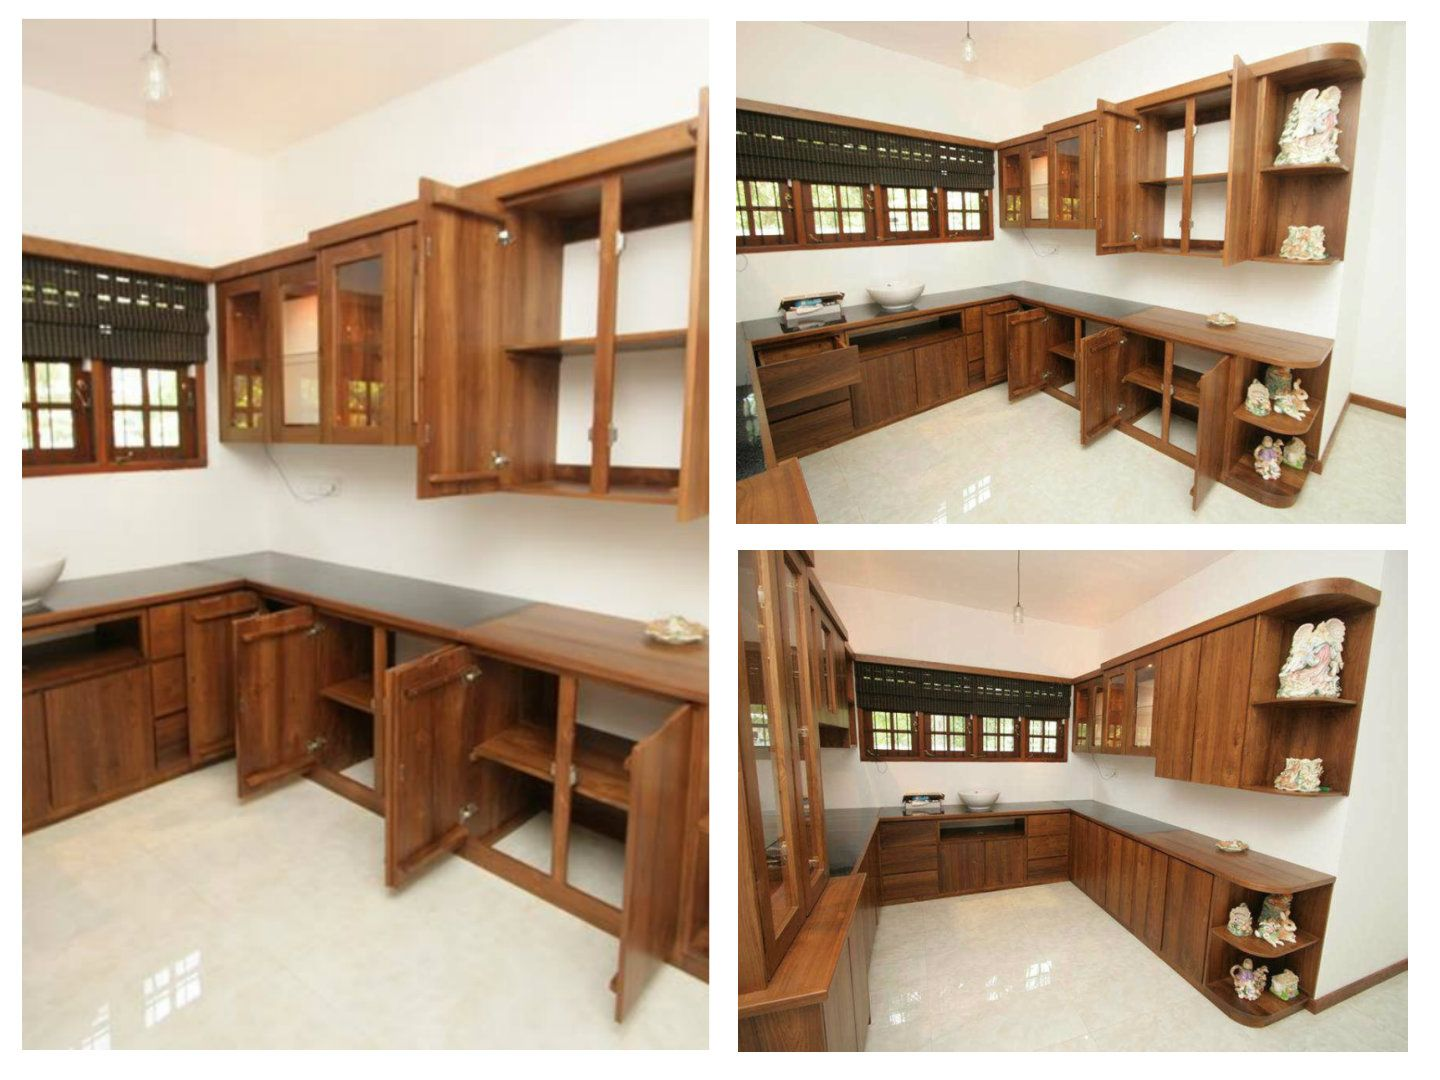 Choose From A Range Of Furniture And Create Your Dream Pantry Kitchen And Add Elegance To Your Home Below Is An A Pantry Furniture Dream Pantry Home Furniture